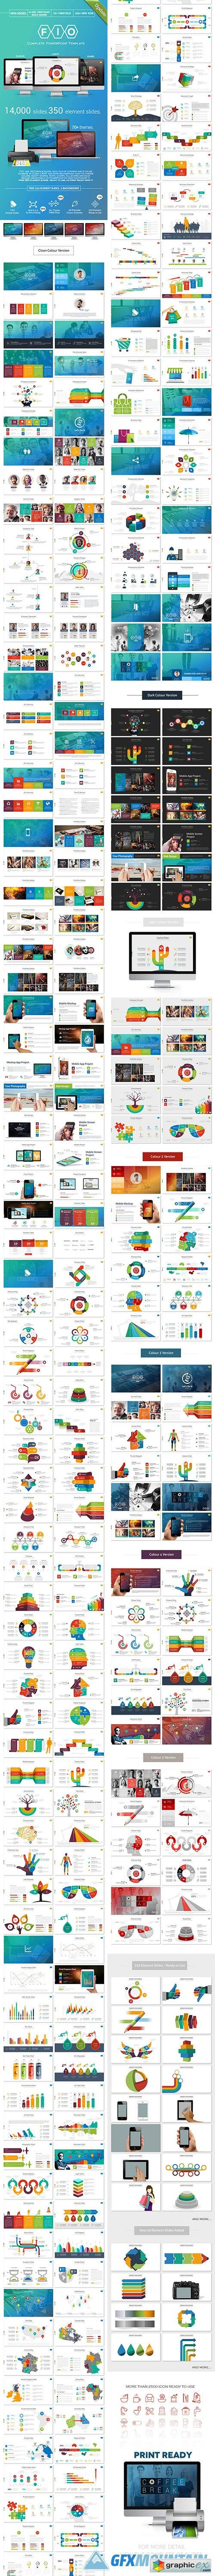 Fio - Complete Powerpoint Template - Print Ready